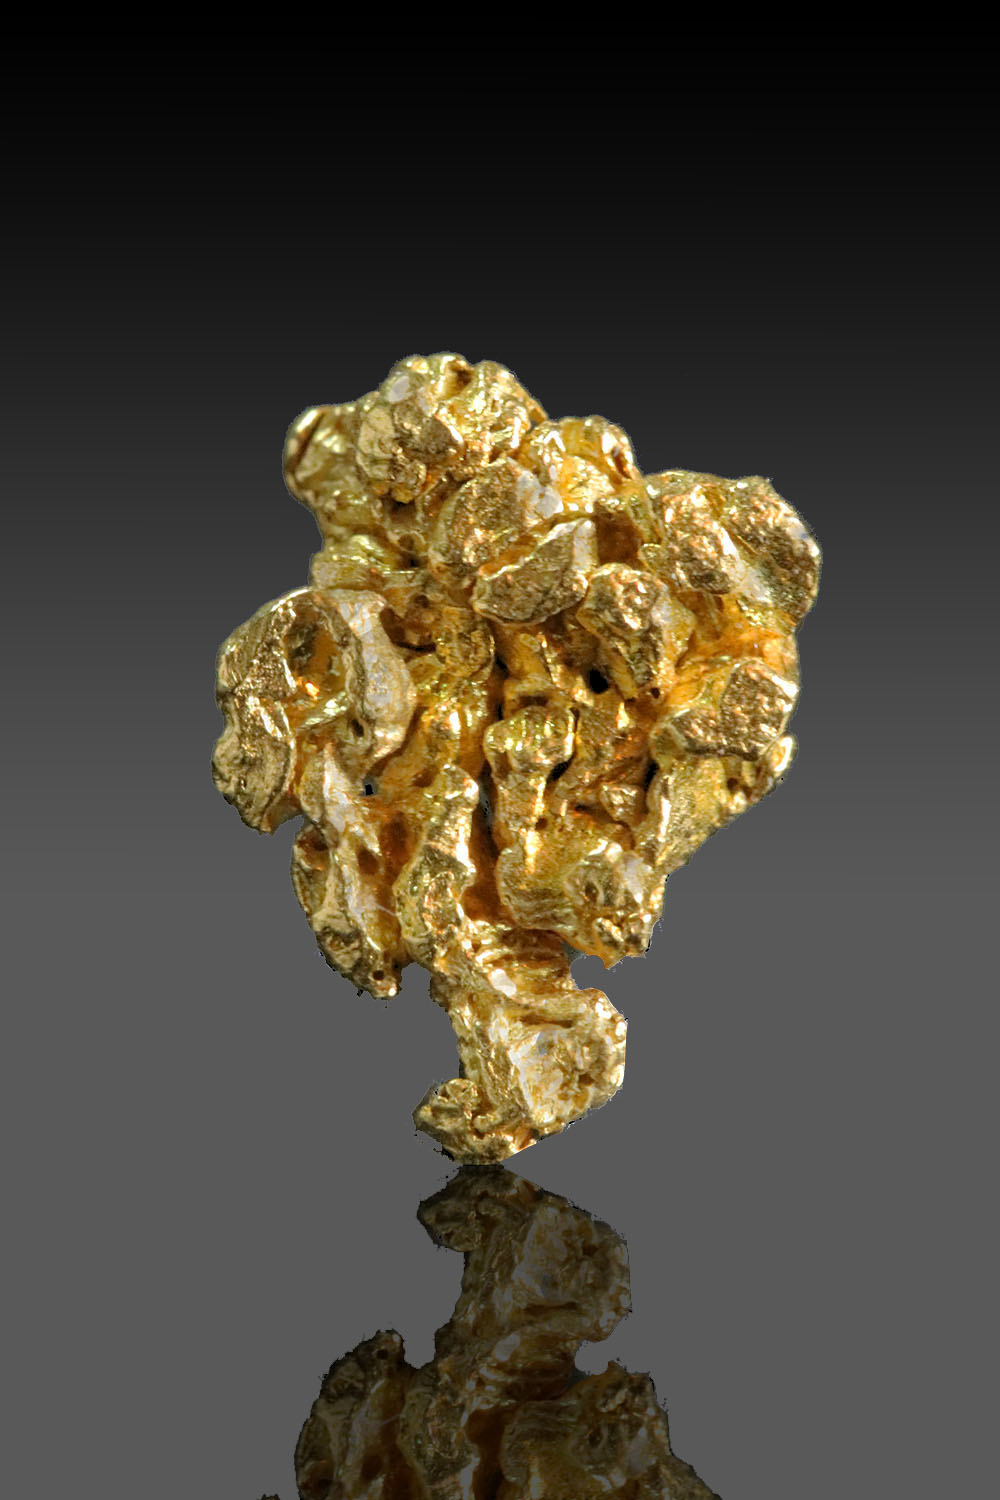 Chunky and Crystalized Natrual Gold Nugget from the Yukon